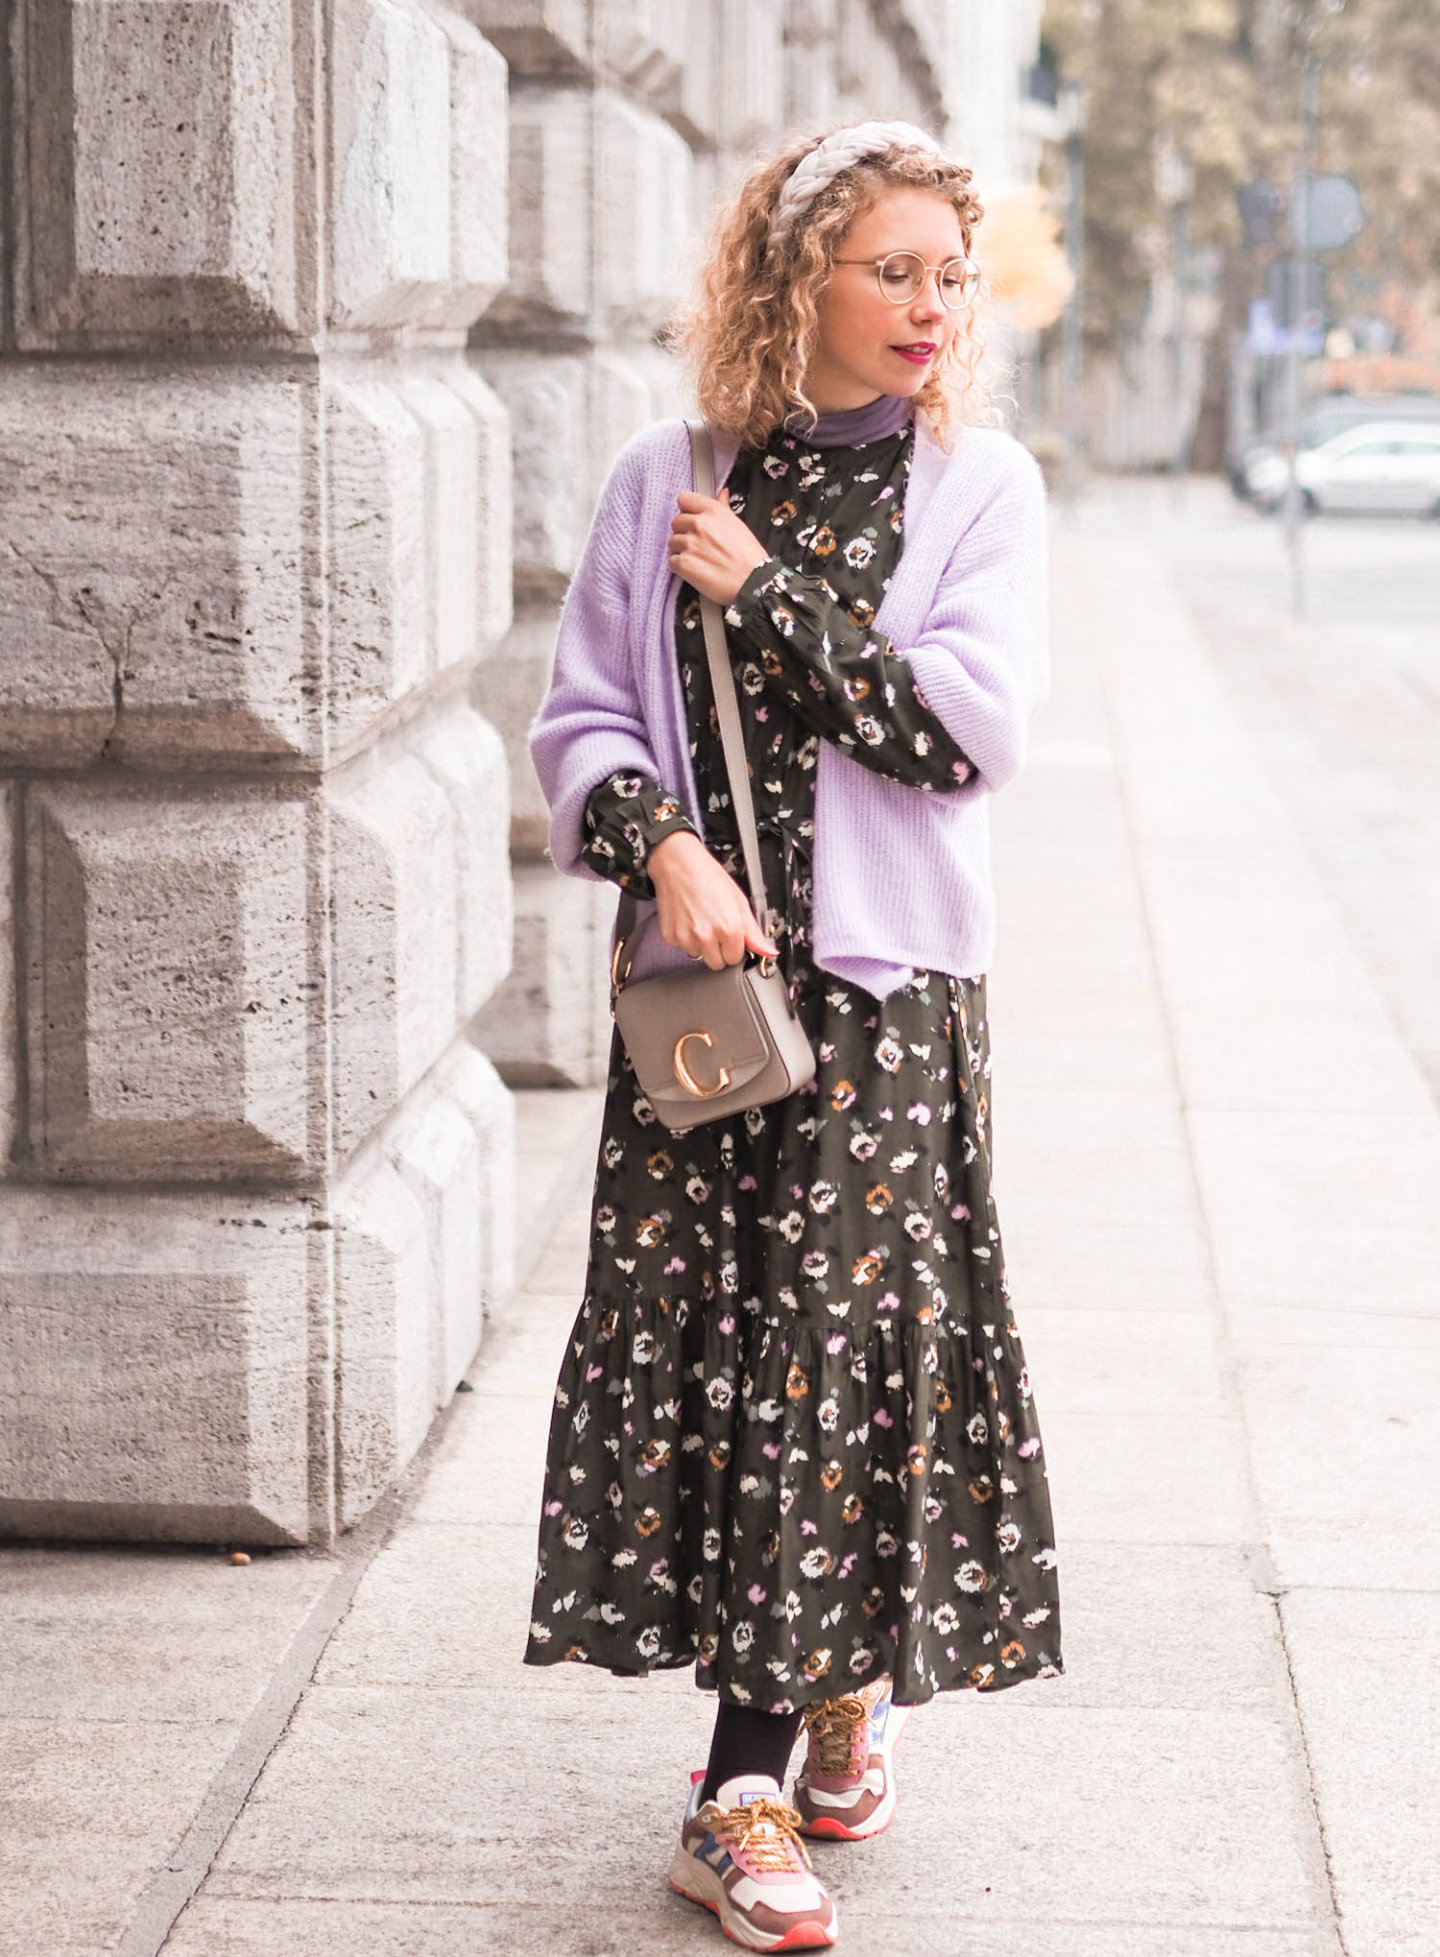 midikleid kombination im herbst - outfit inspiration